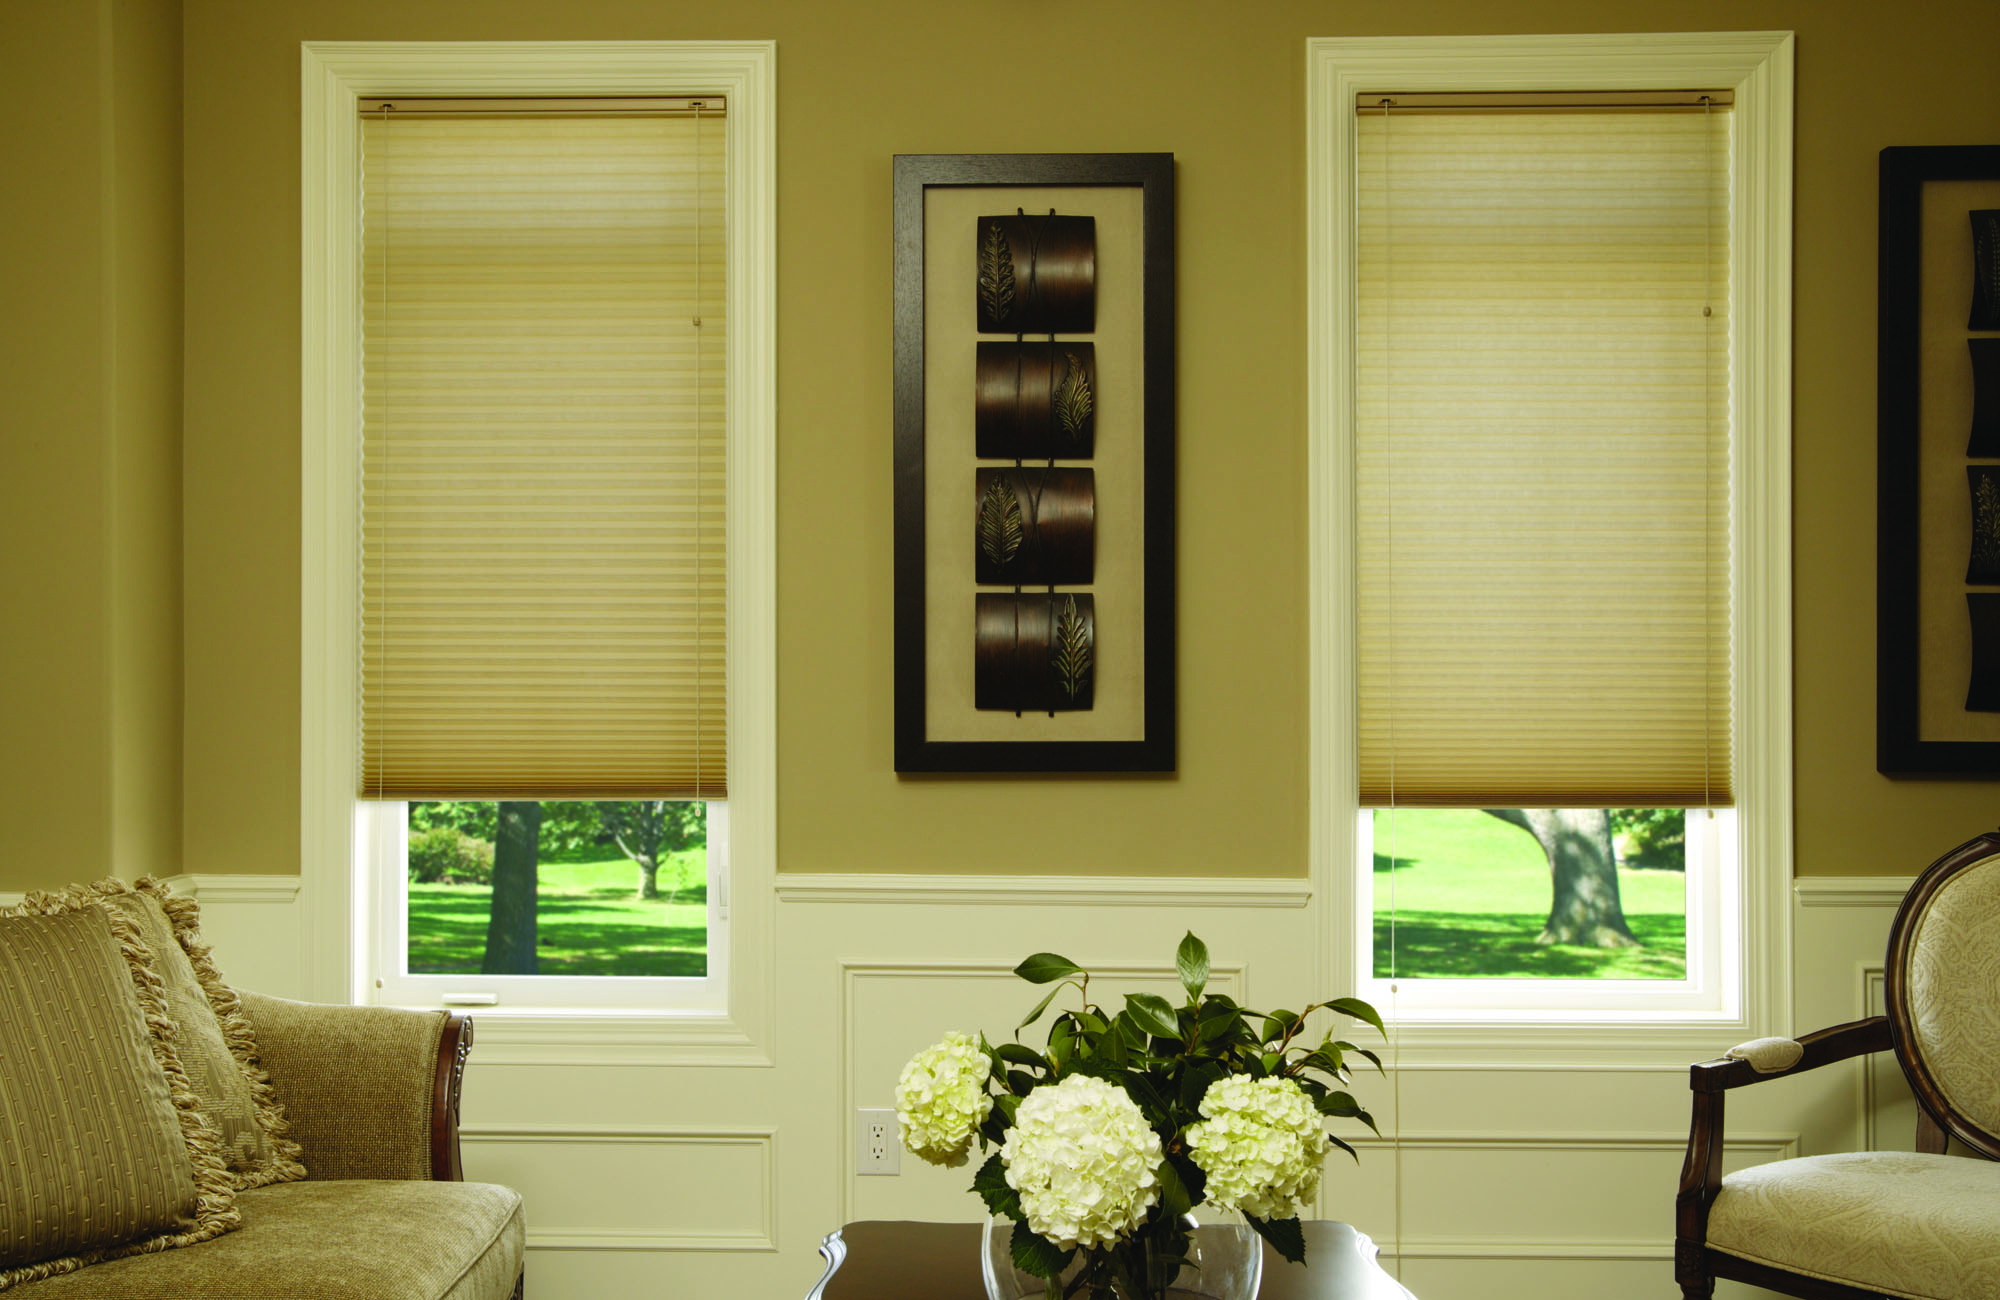 Affordable budget blinds, shades, and shutters